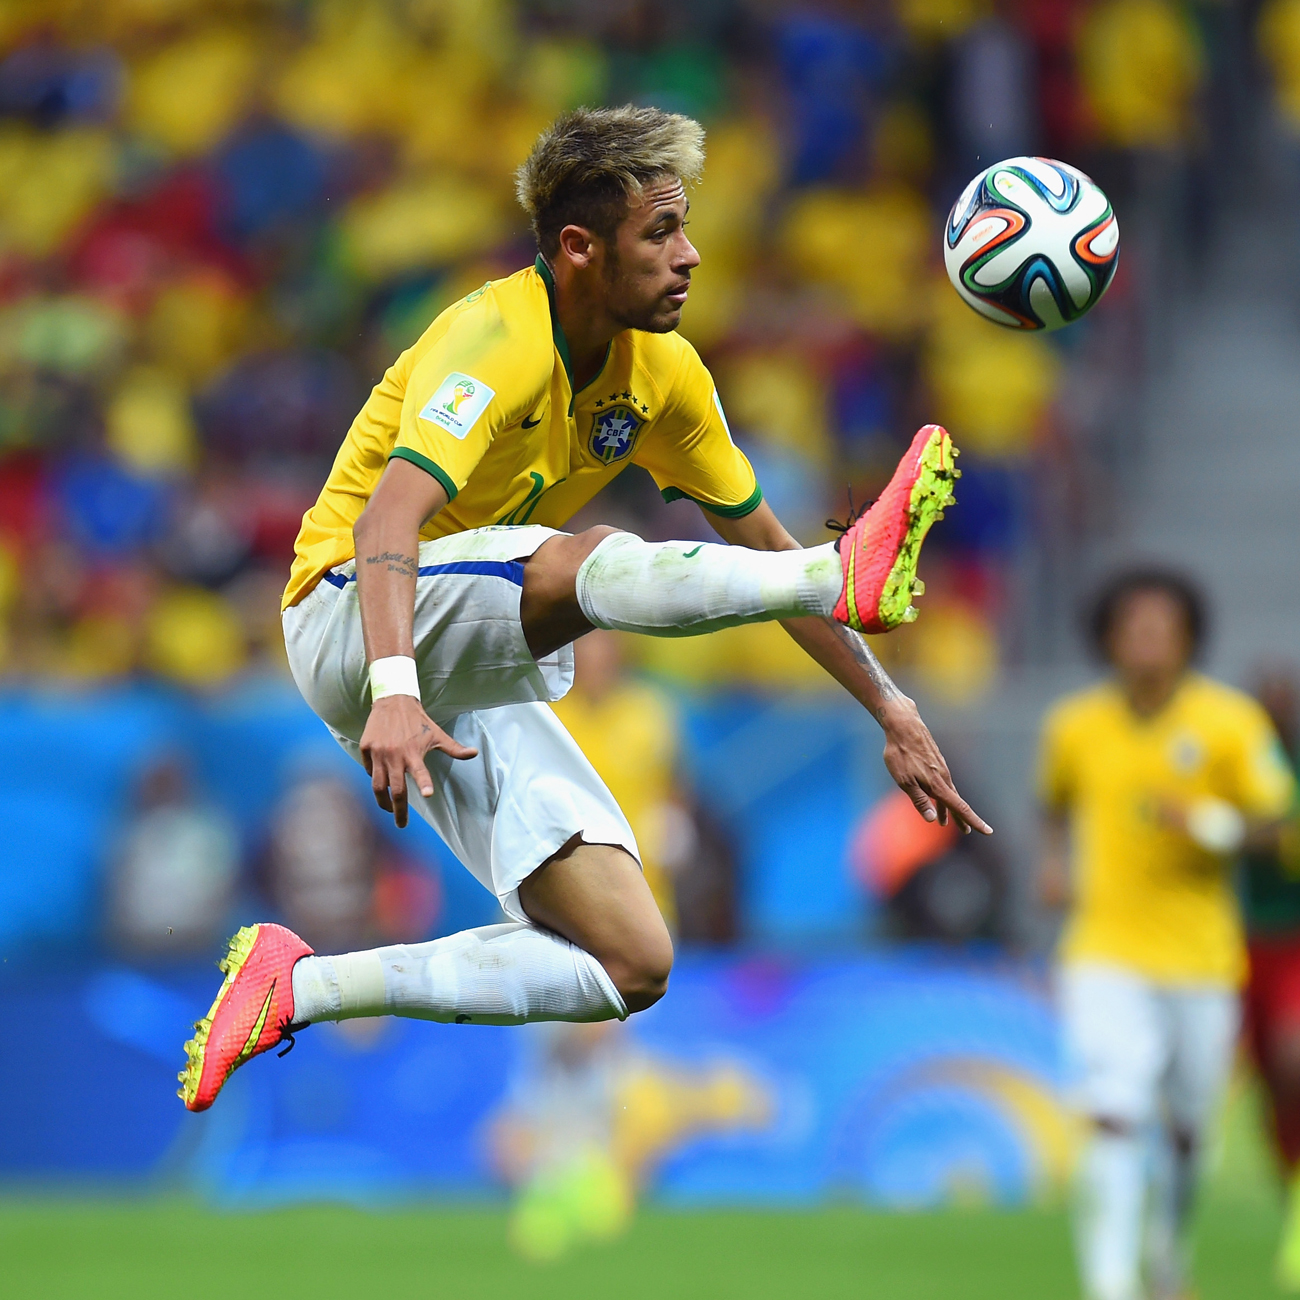 neymar football soccer player free hd kick ball air mobile desktop bakground download wallpaper images